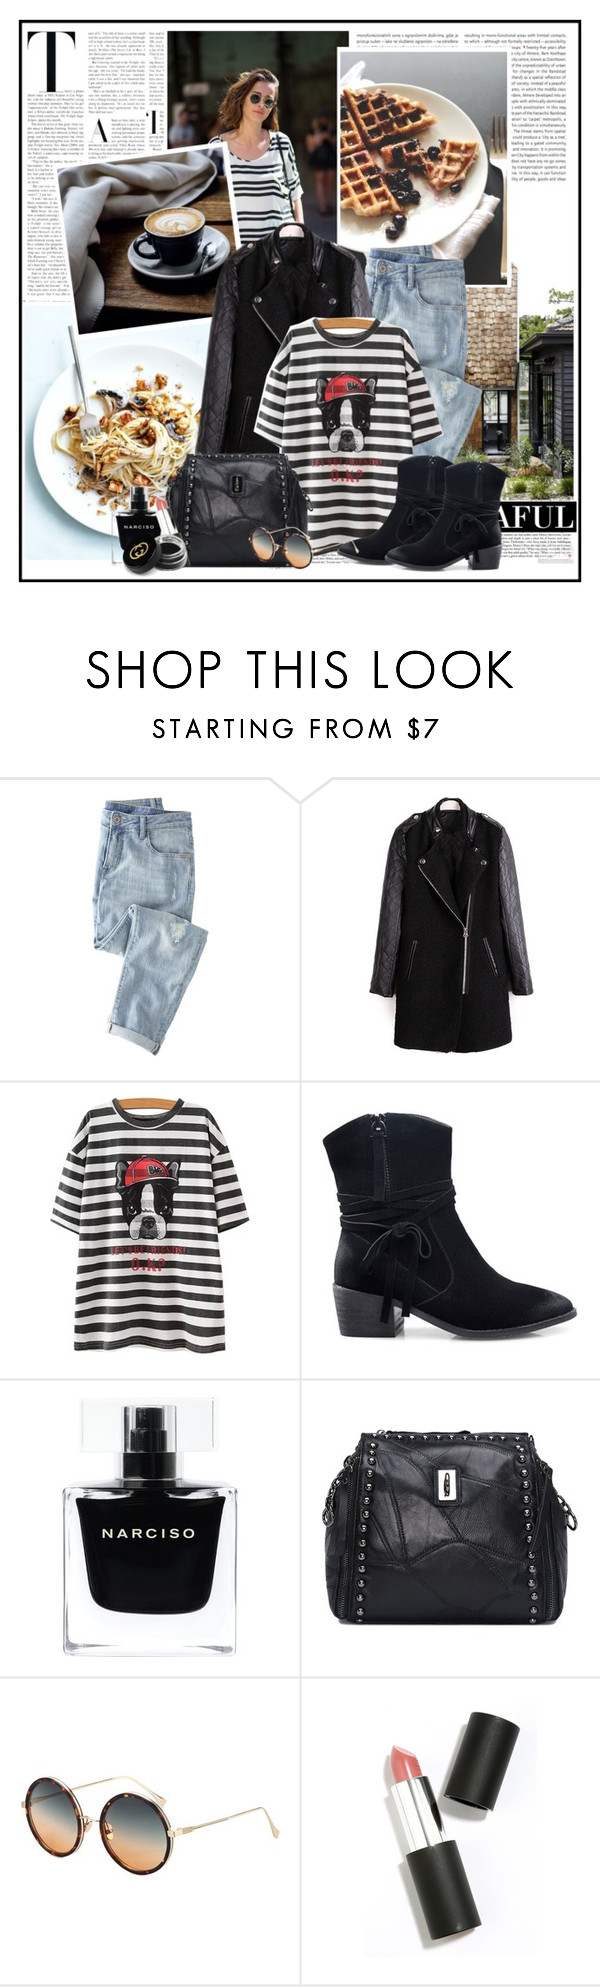 """""""Zaful.com 35..."""" by cindy88 ❤ liked on Polyvore featuring Oris, Wrap, Narciso Rodriguez, Sigma Beauty, Gucci and zaful"""